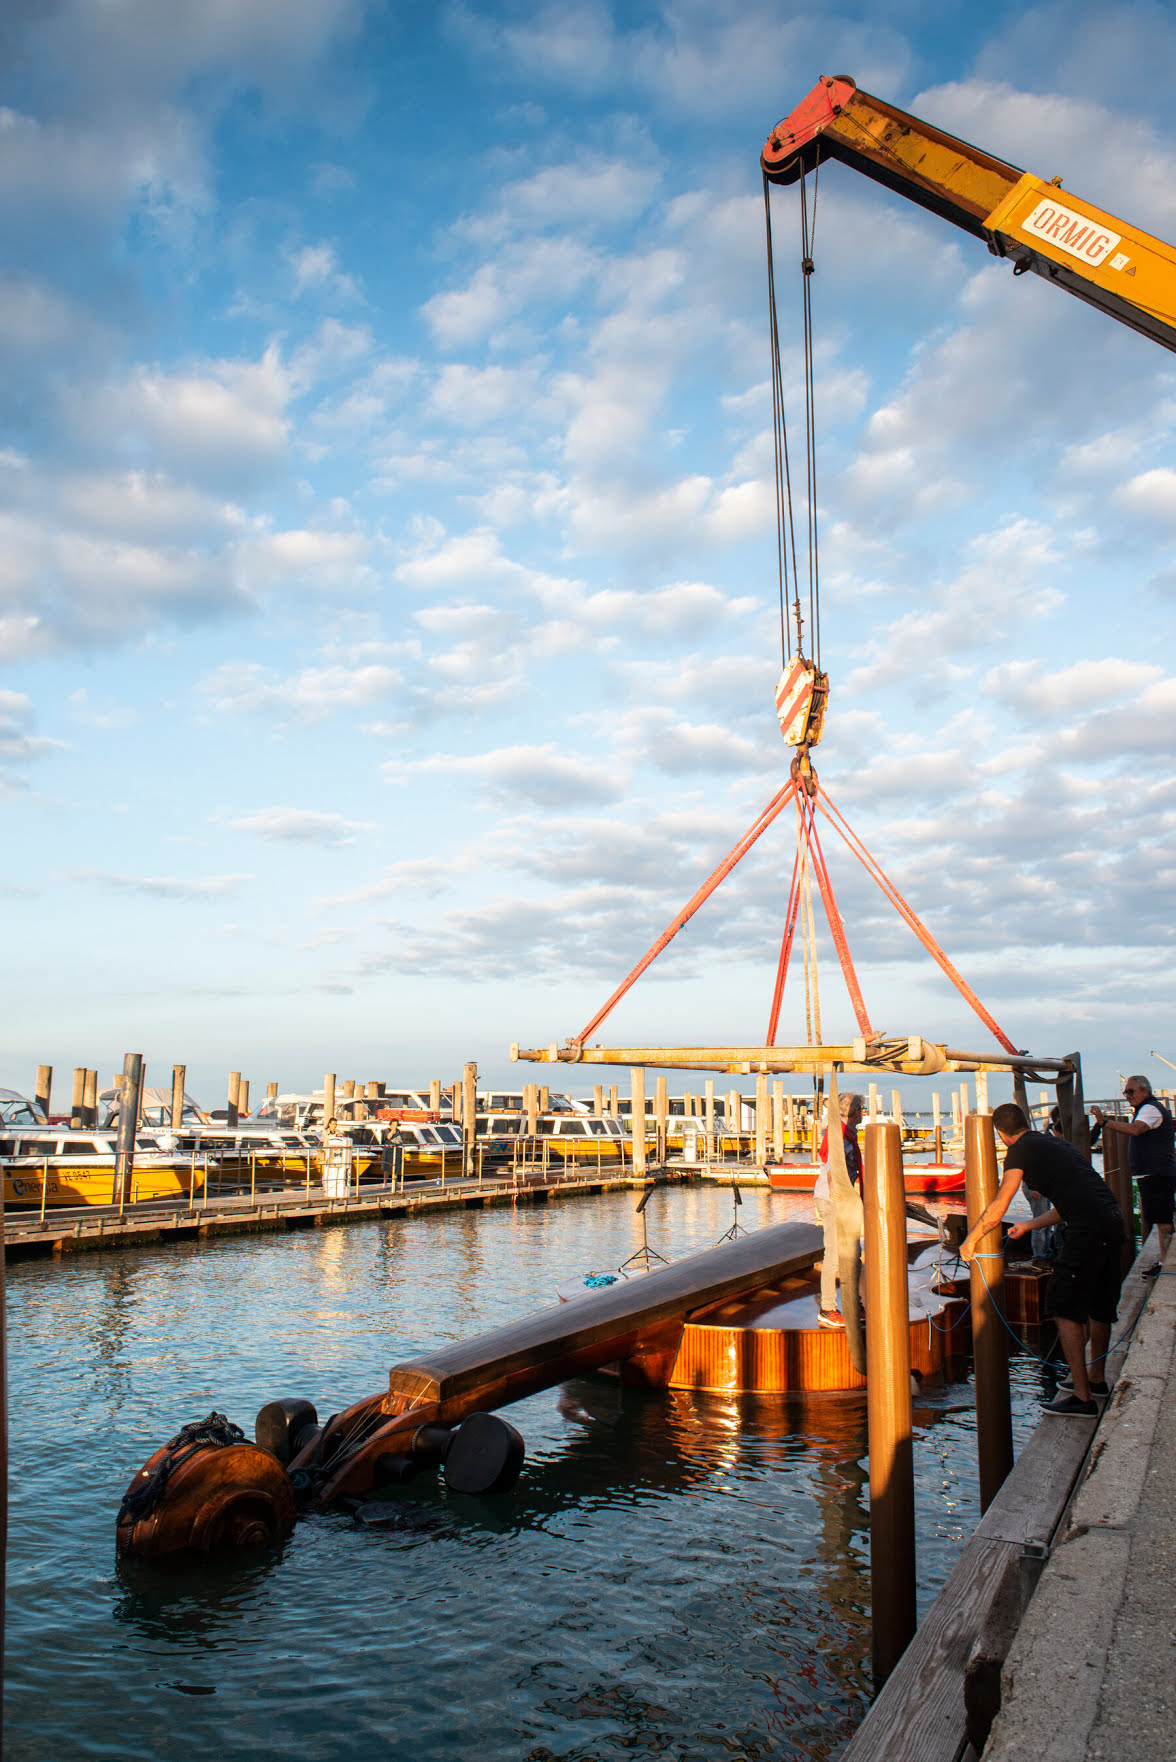 The violin being lowered into the lagoon. The artwork is a large-scale replica of a real violin.